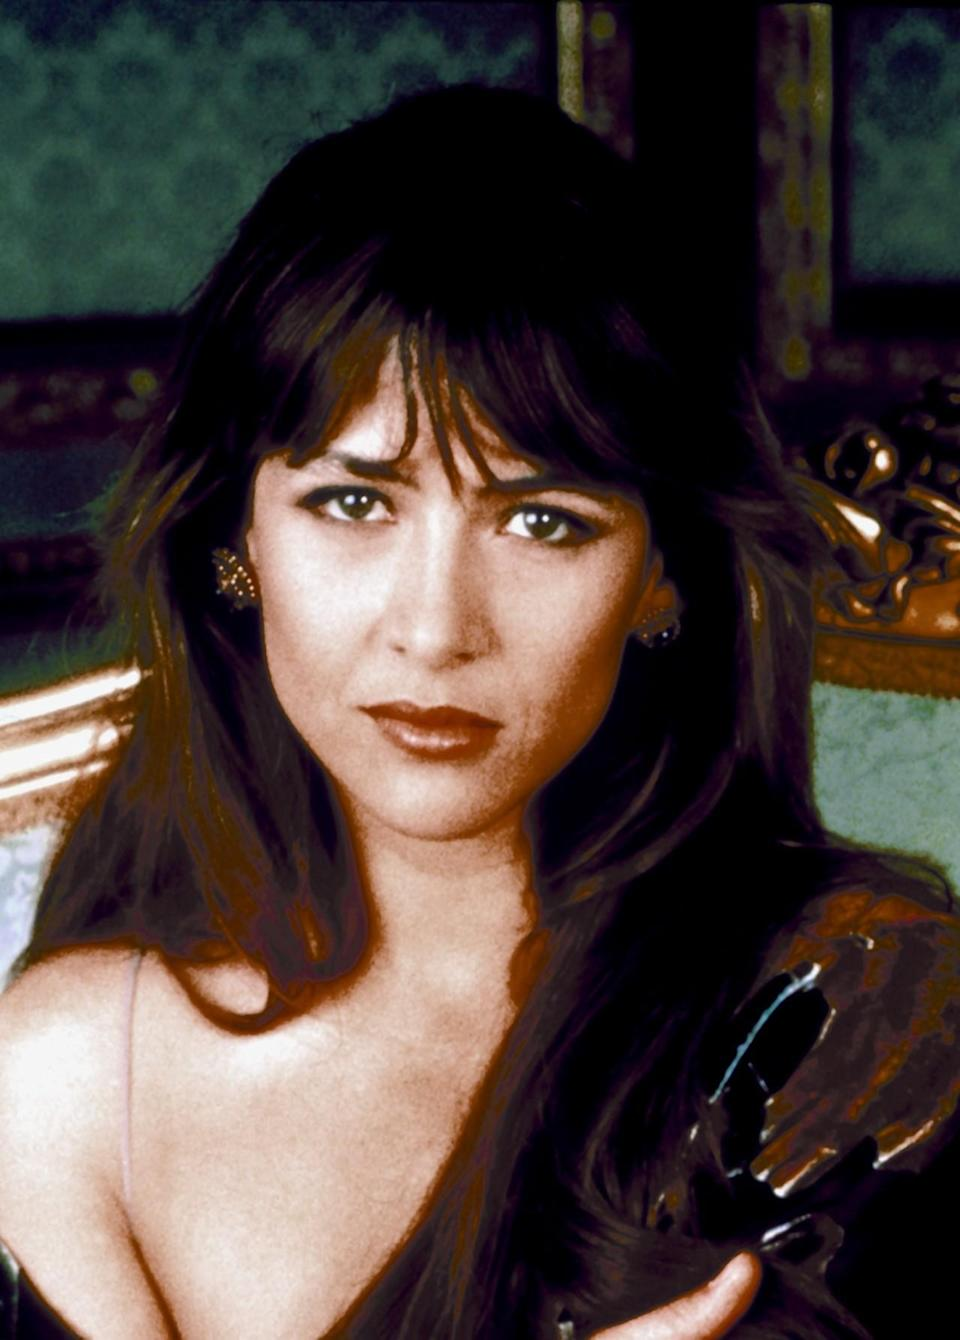 <p>This oil heiress and kidnapping victim is a target of the world's biggest terrorist. Her deceased father was a friend of M, so Bond is assigned to protect her, but she's not as innocent as she seems.<i> Photo: Everett Collection</i><br></p>